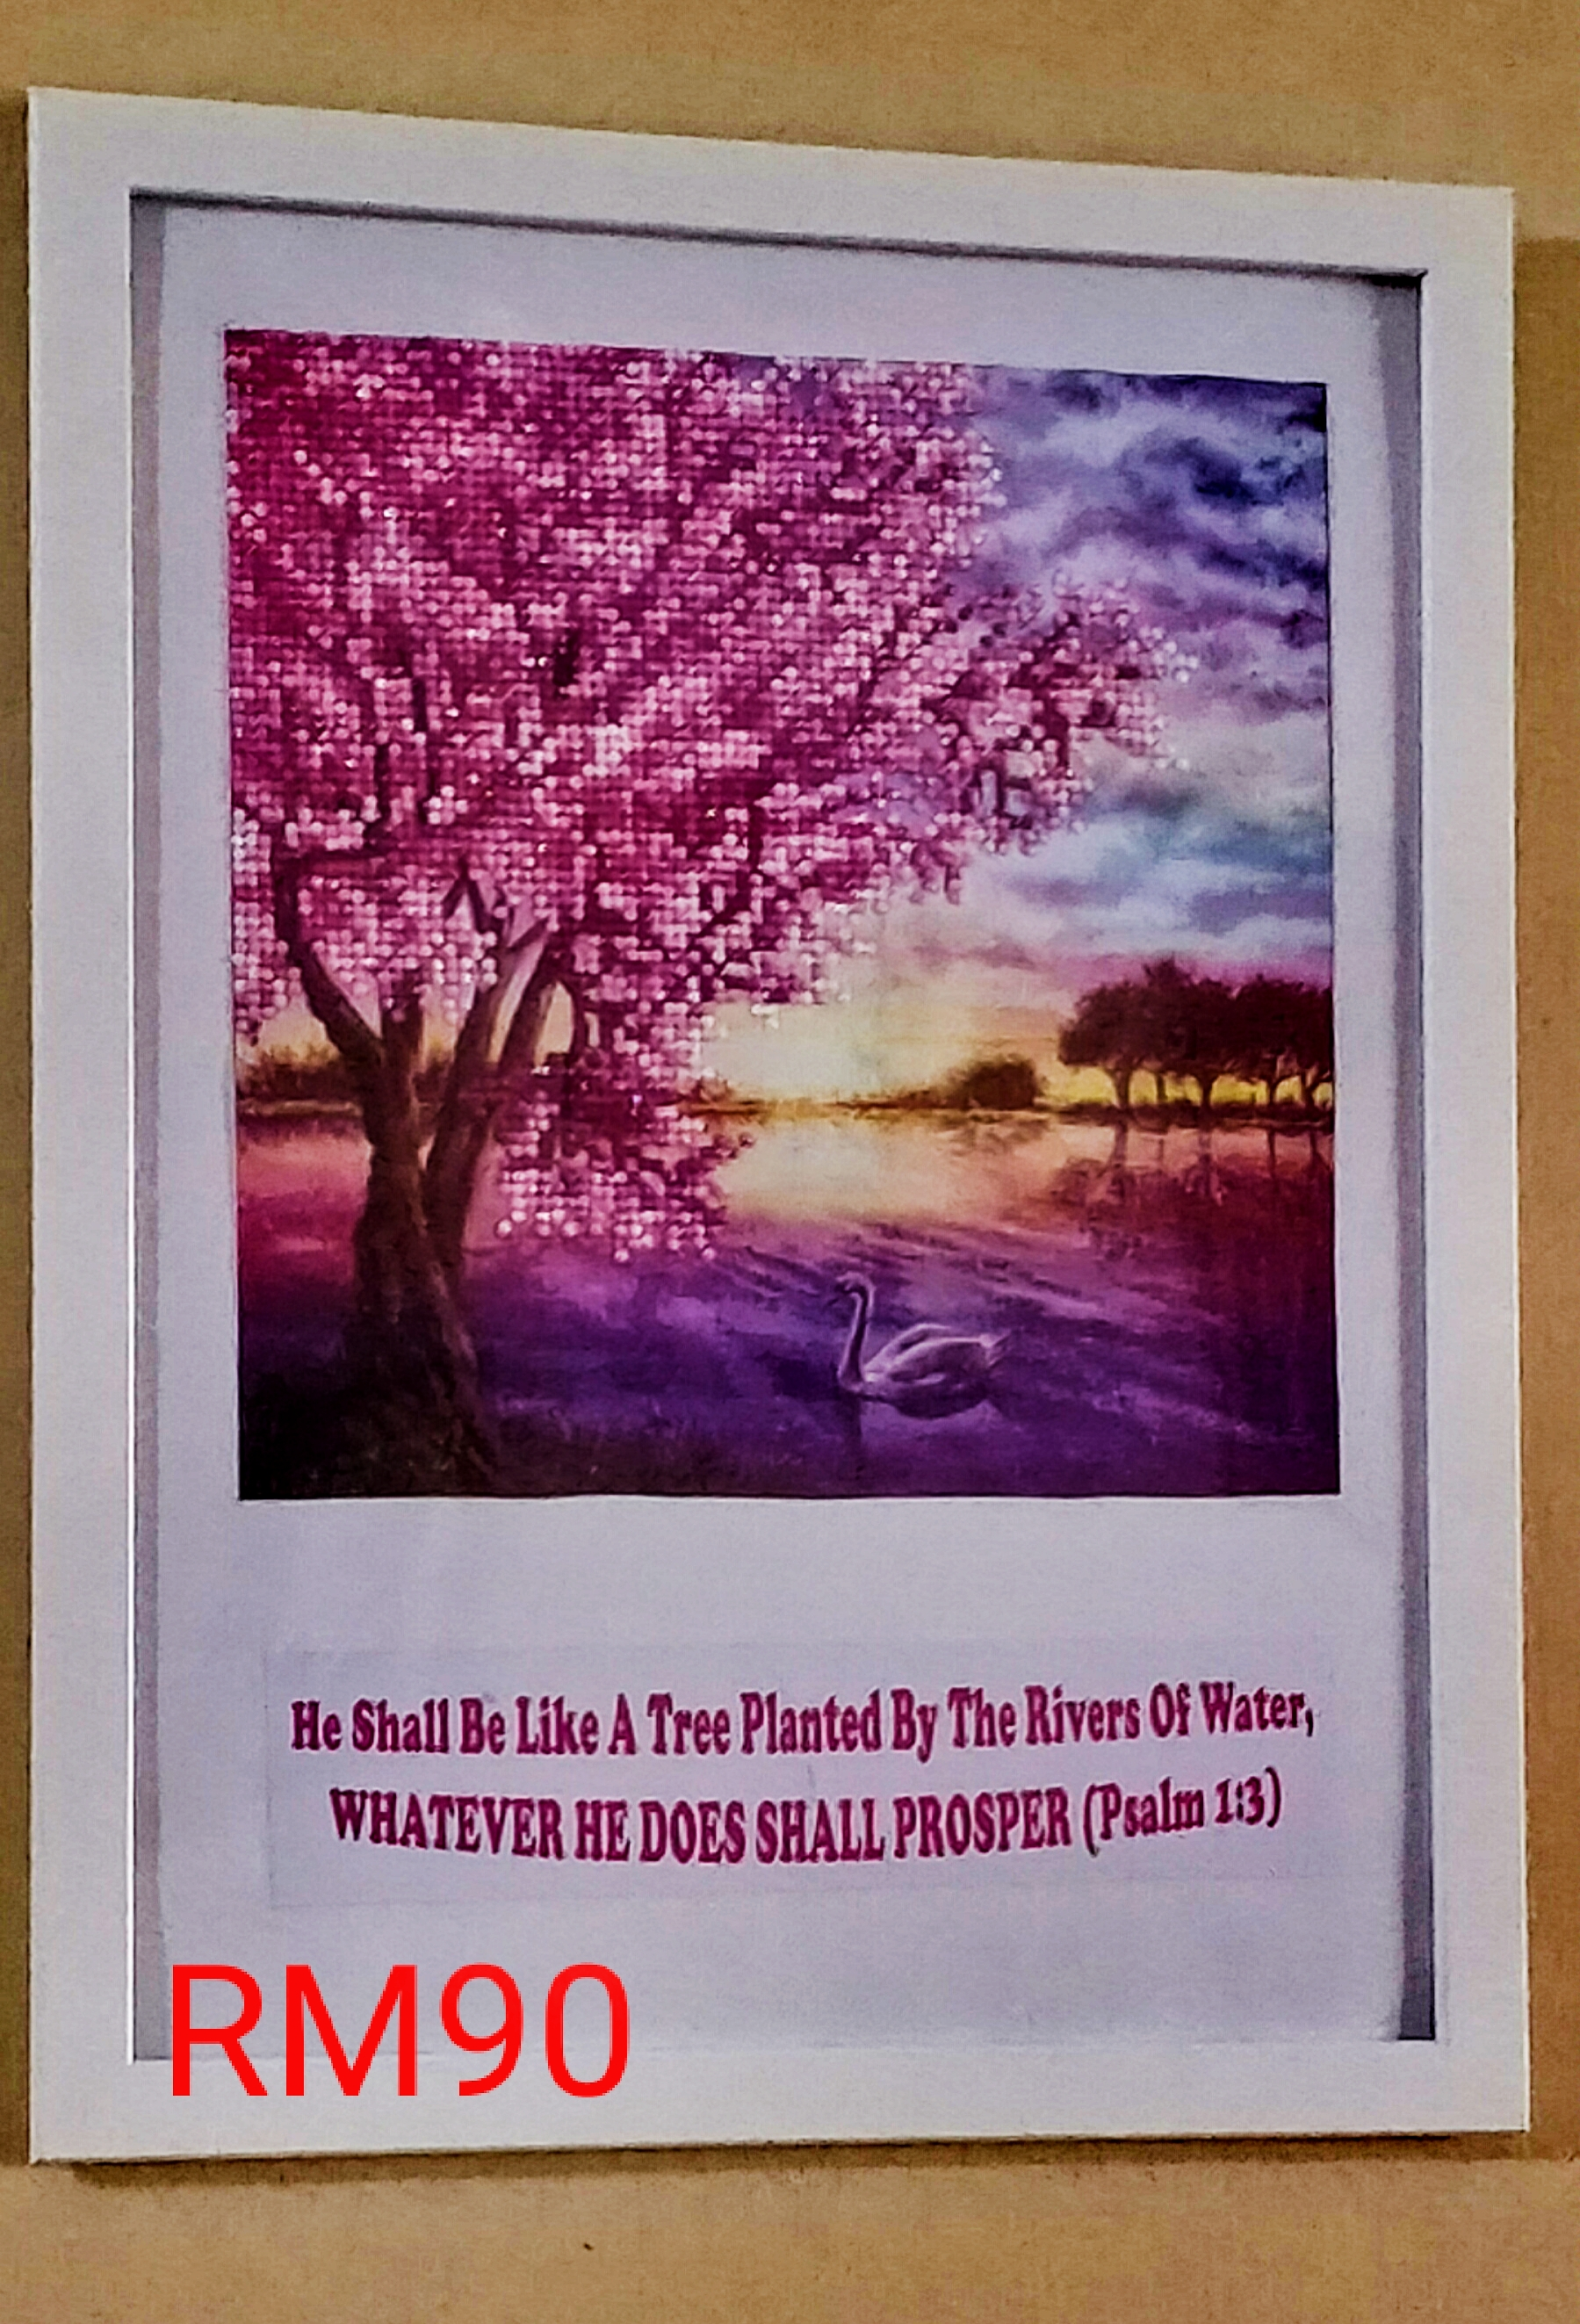 PINK TREE WITH BIBLE VERSE